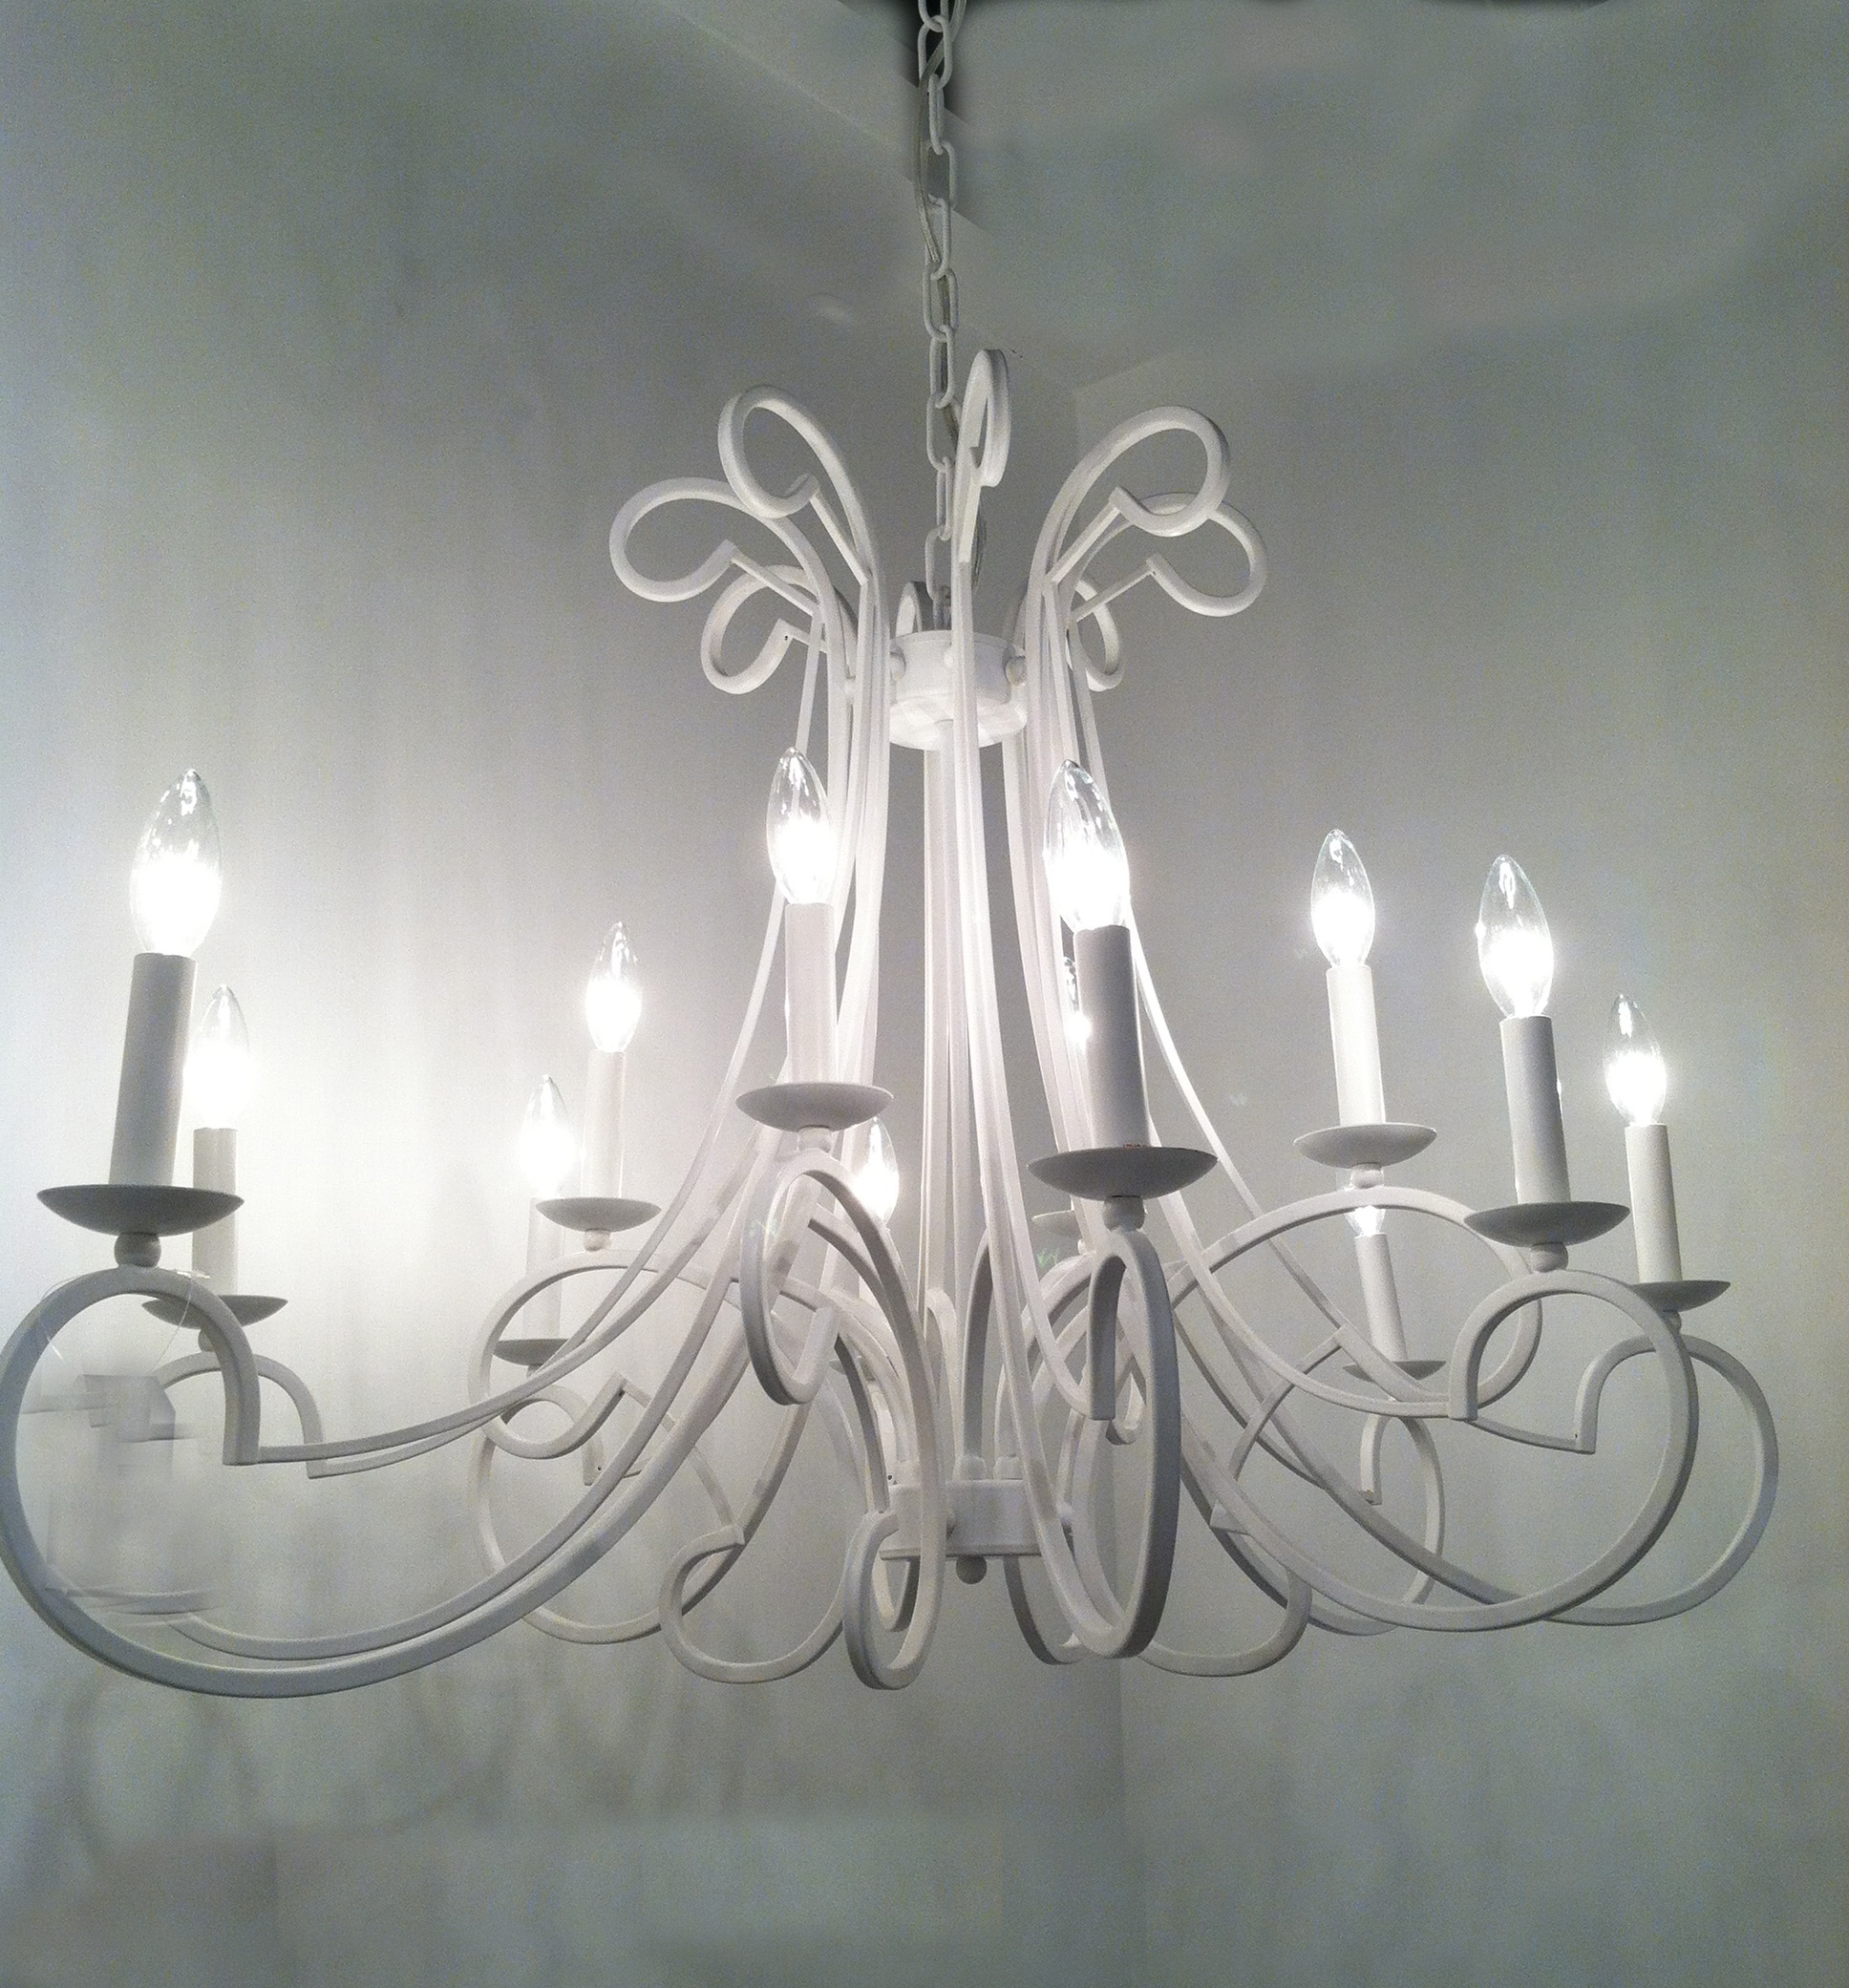 Cool Chandeliers Made In France Jose Esteves Silverware In White Chandeliers (#5 of 12)